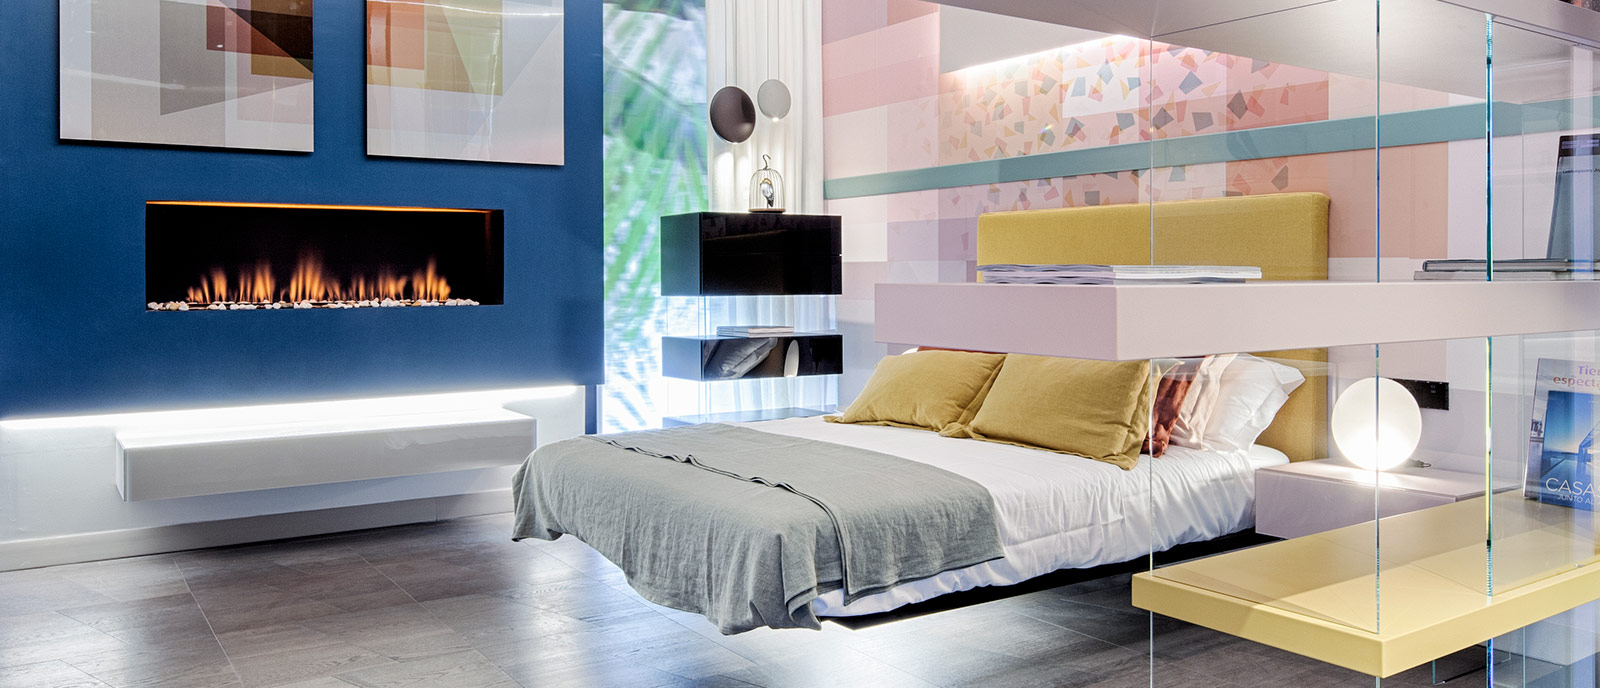 Dormitorio «Dream in Colors» – Espacio Lago